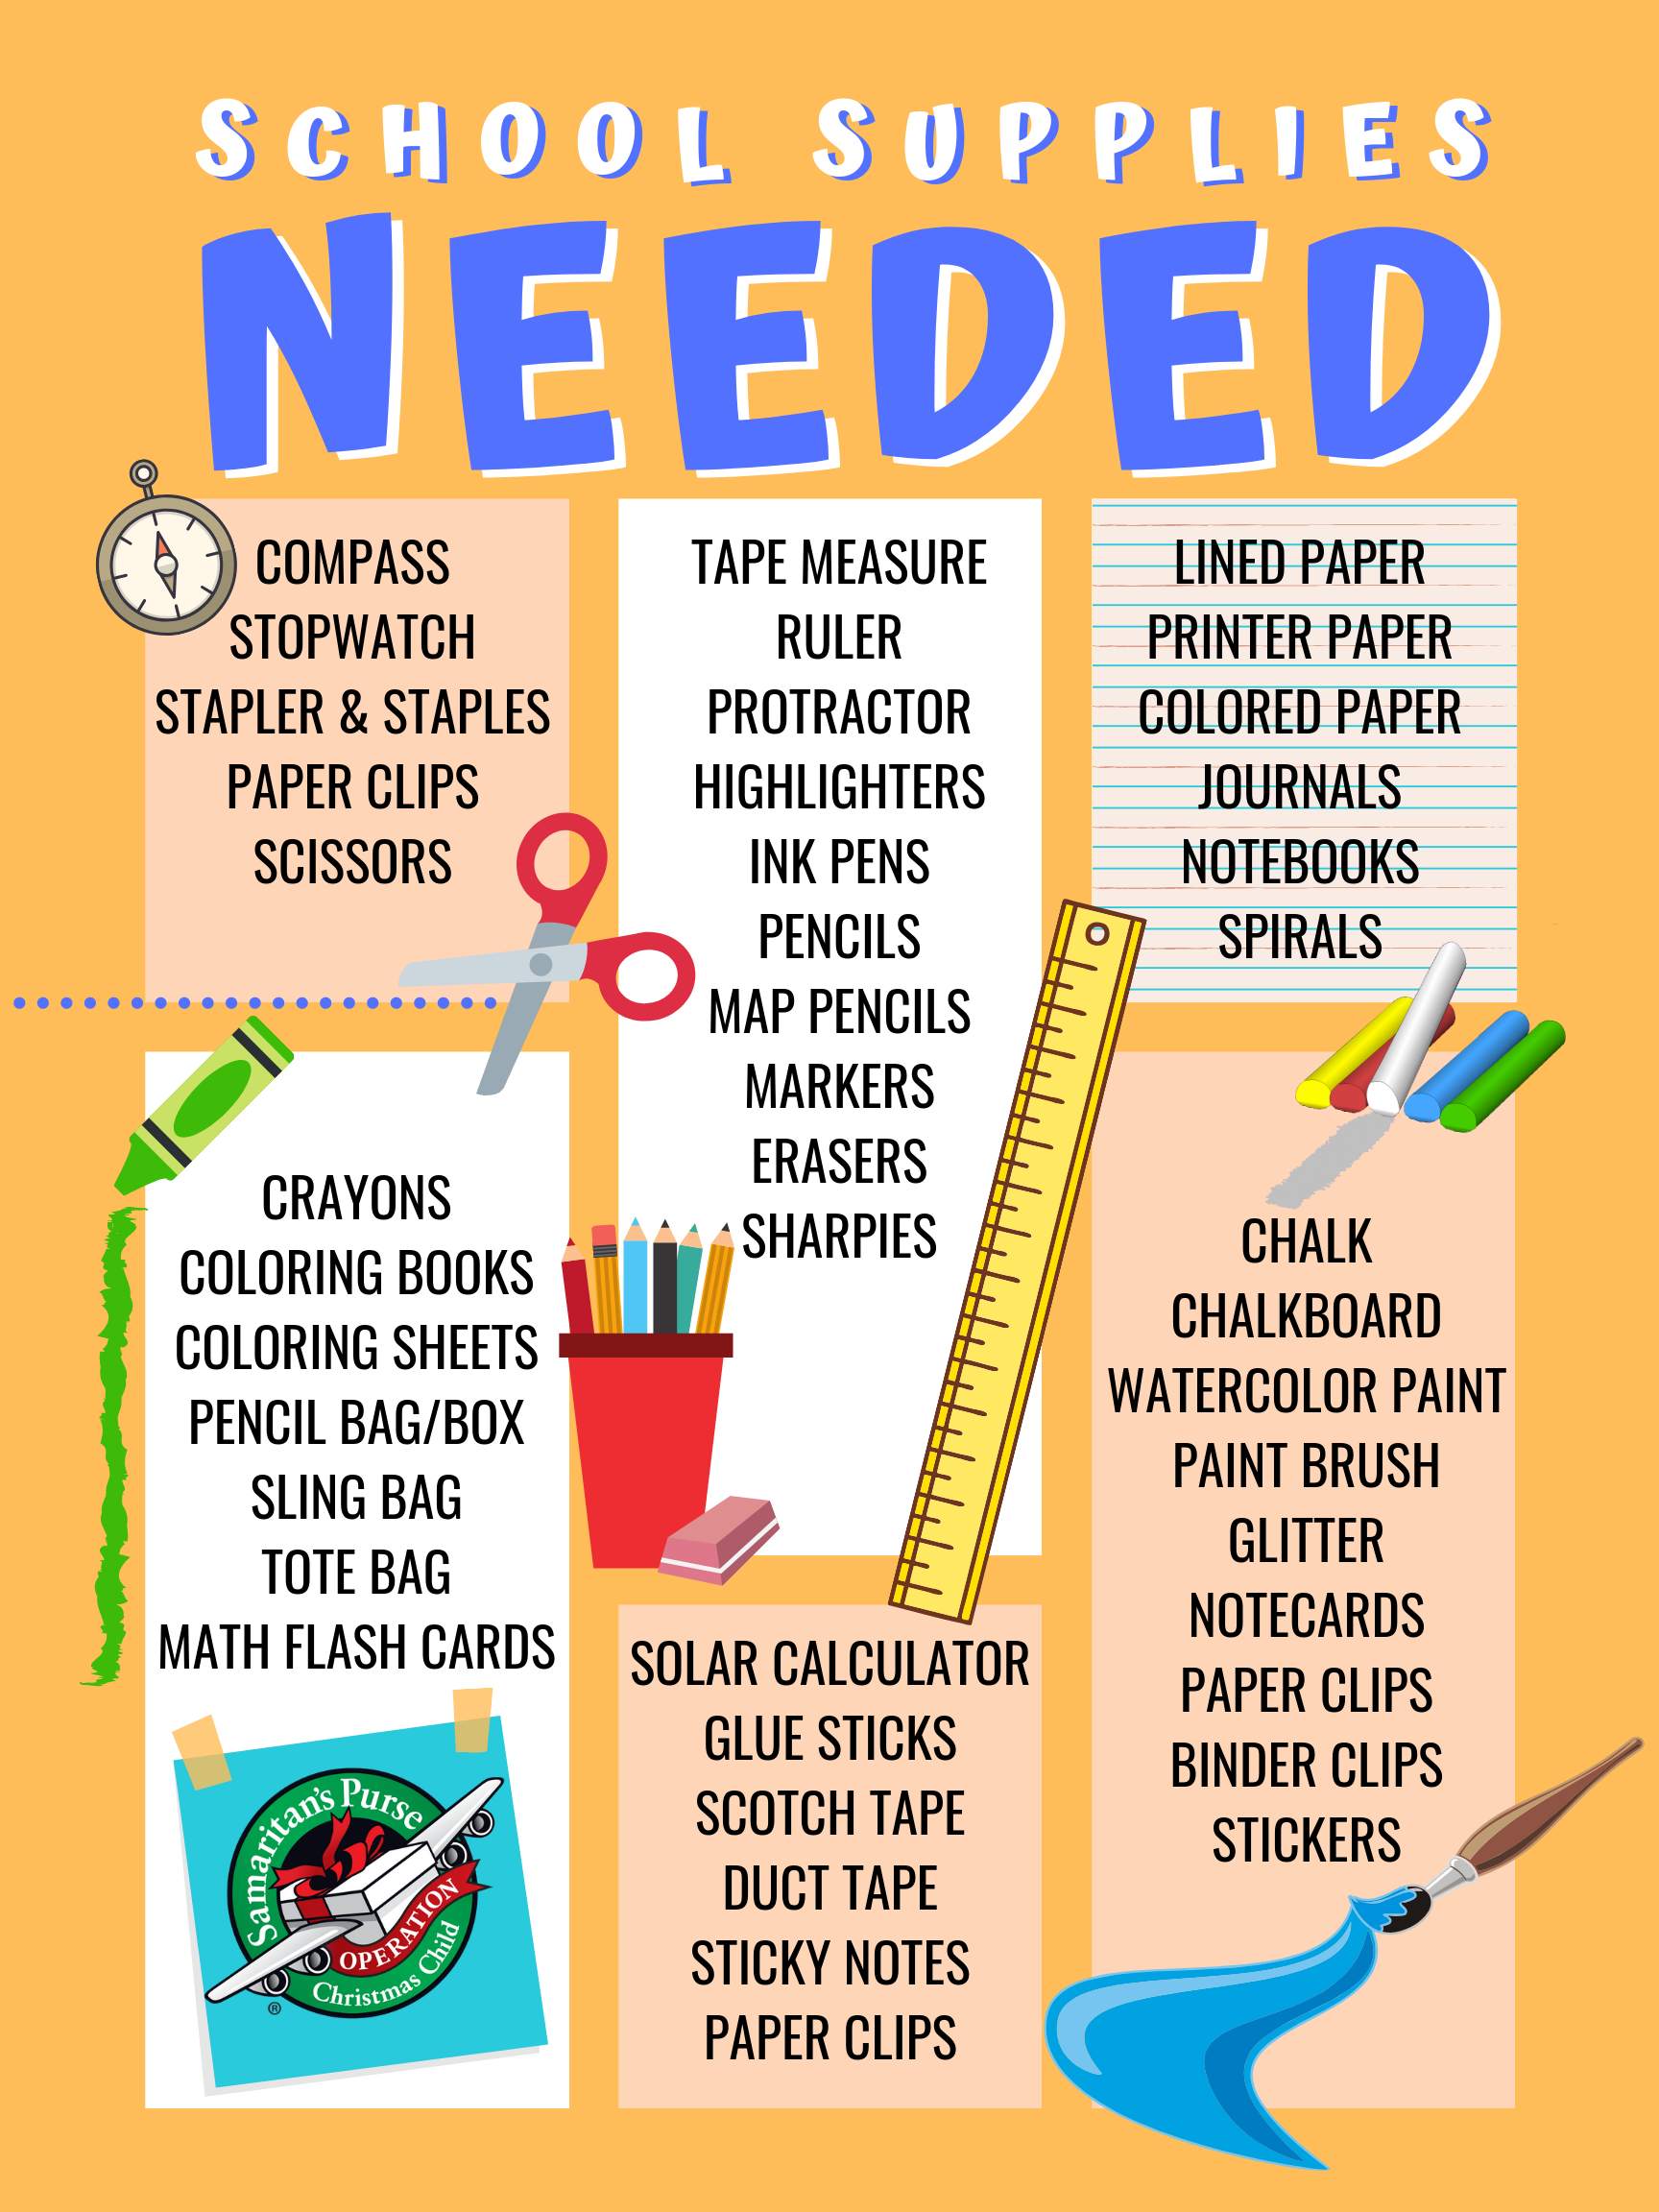 Operation Christmas Child 2019 List.Operation Christmas Child Poster School Supply Donation List